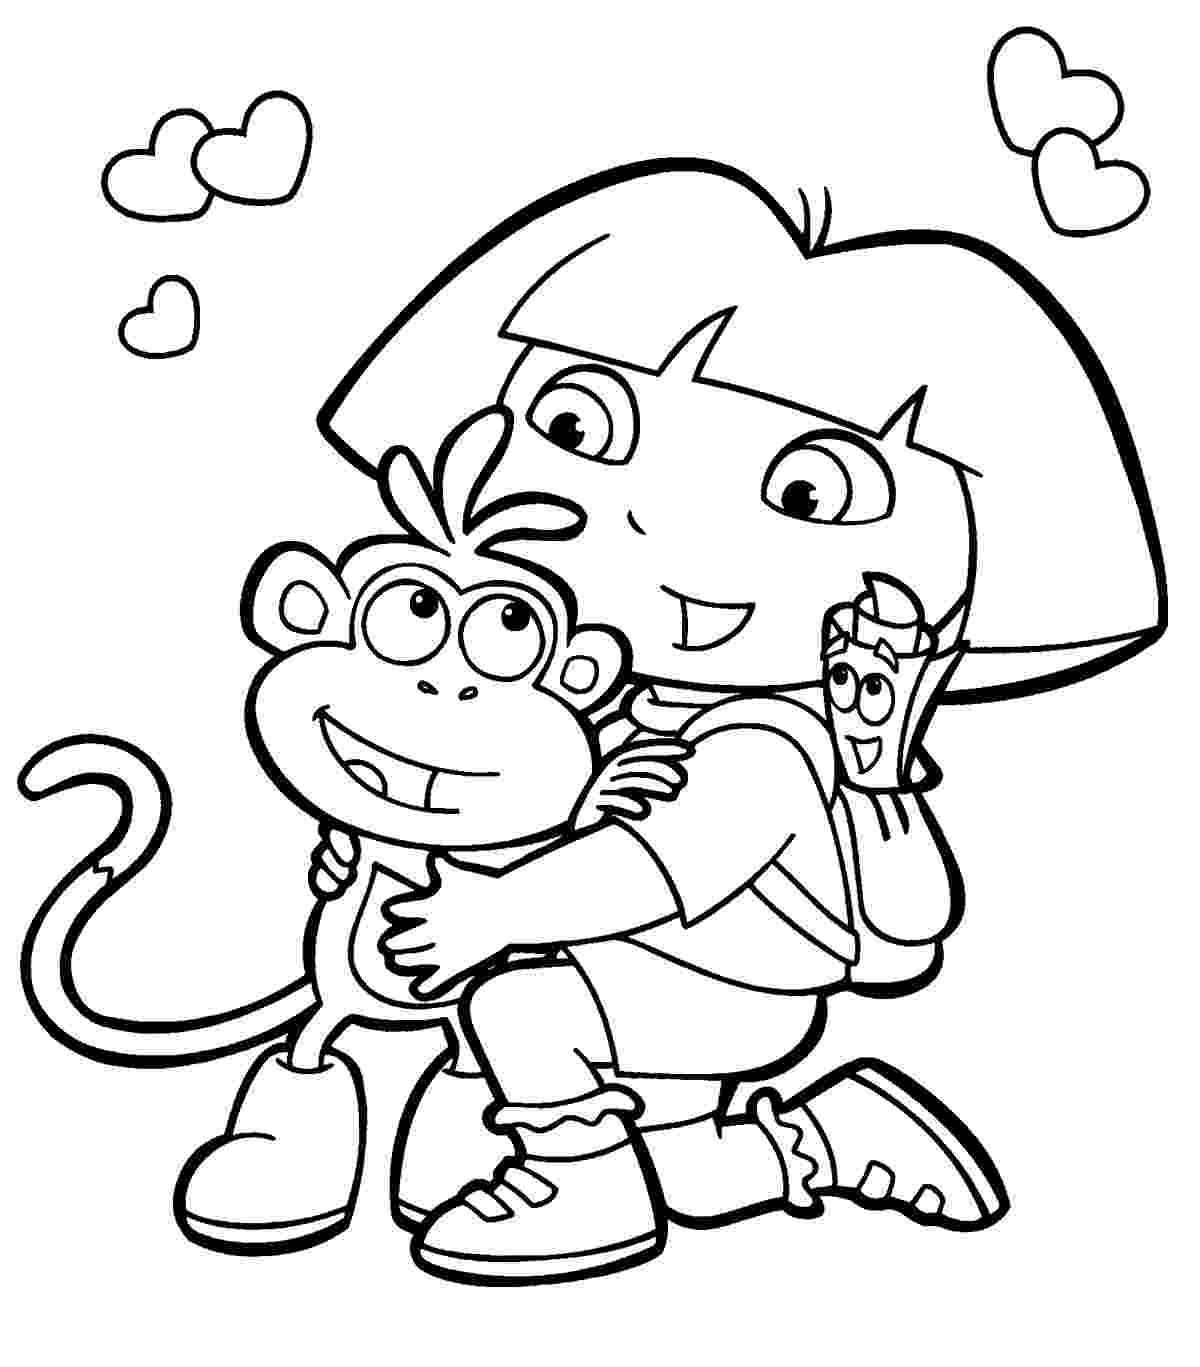 dora the explorer color pages free printable dora the explorer coloring pages for kids the dora pages color explorer